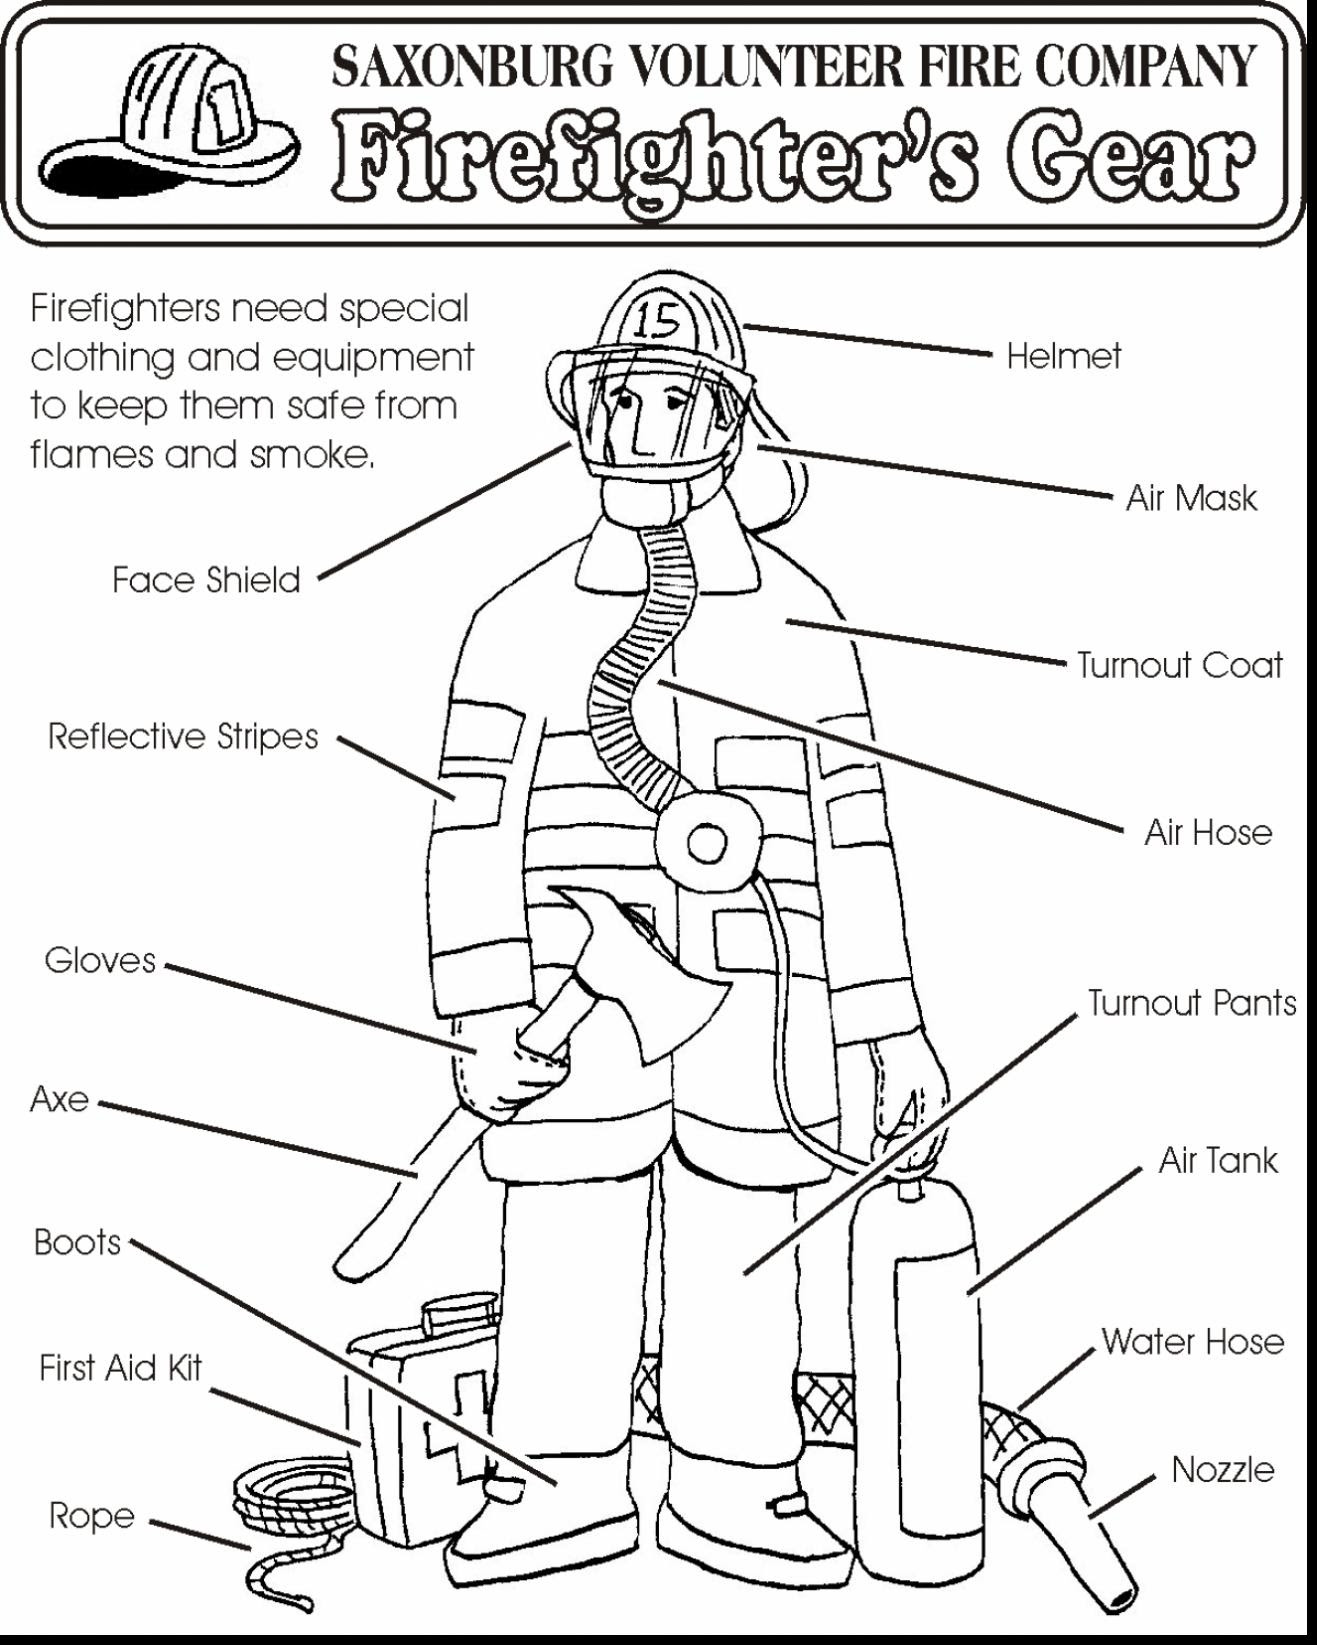 Fire Prevention Coloring Pages at GetColorings.com | Free ...